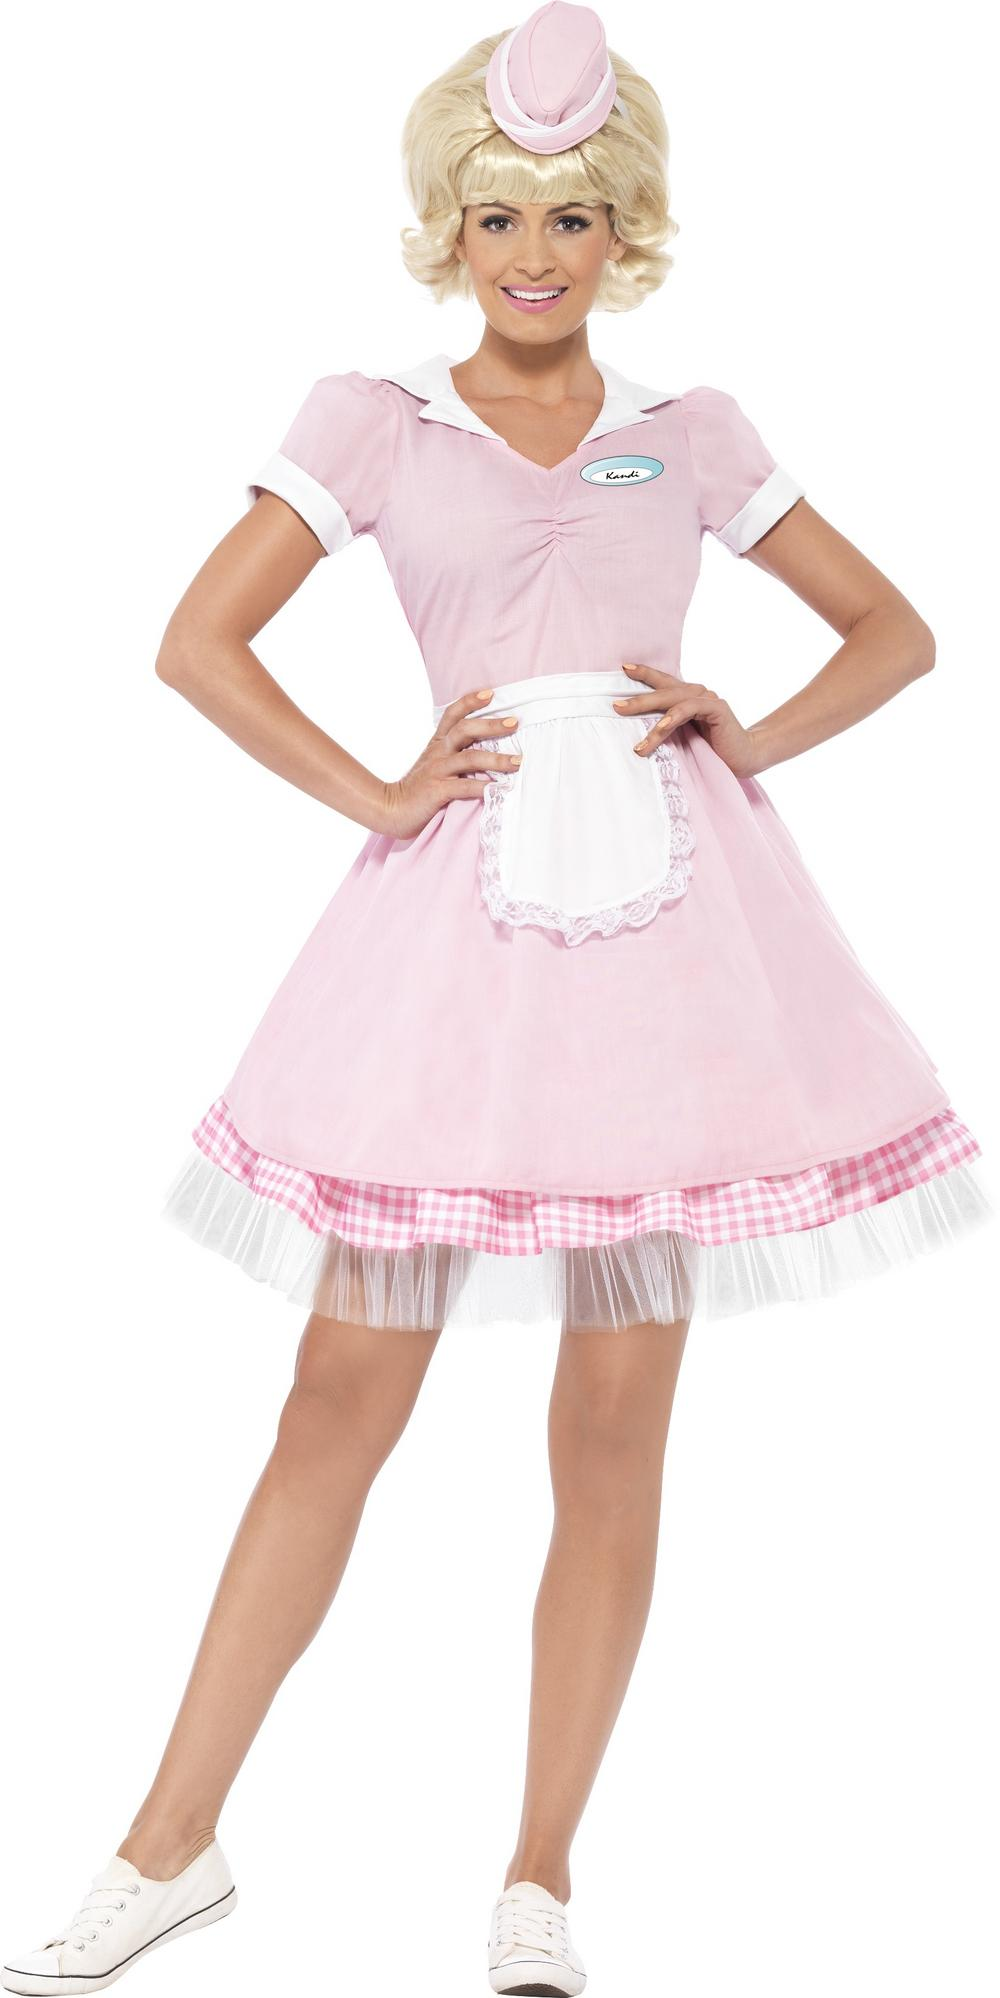 50s Diner Girl Ladies Costume